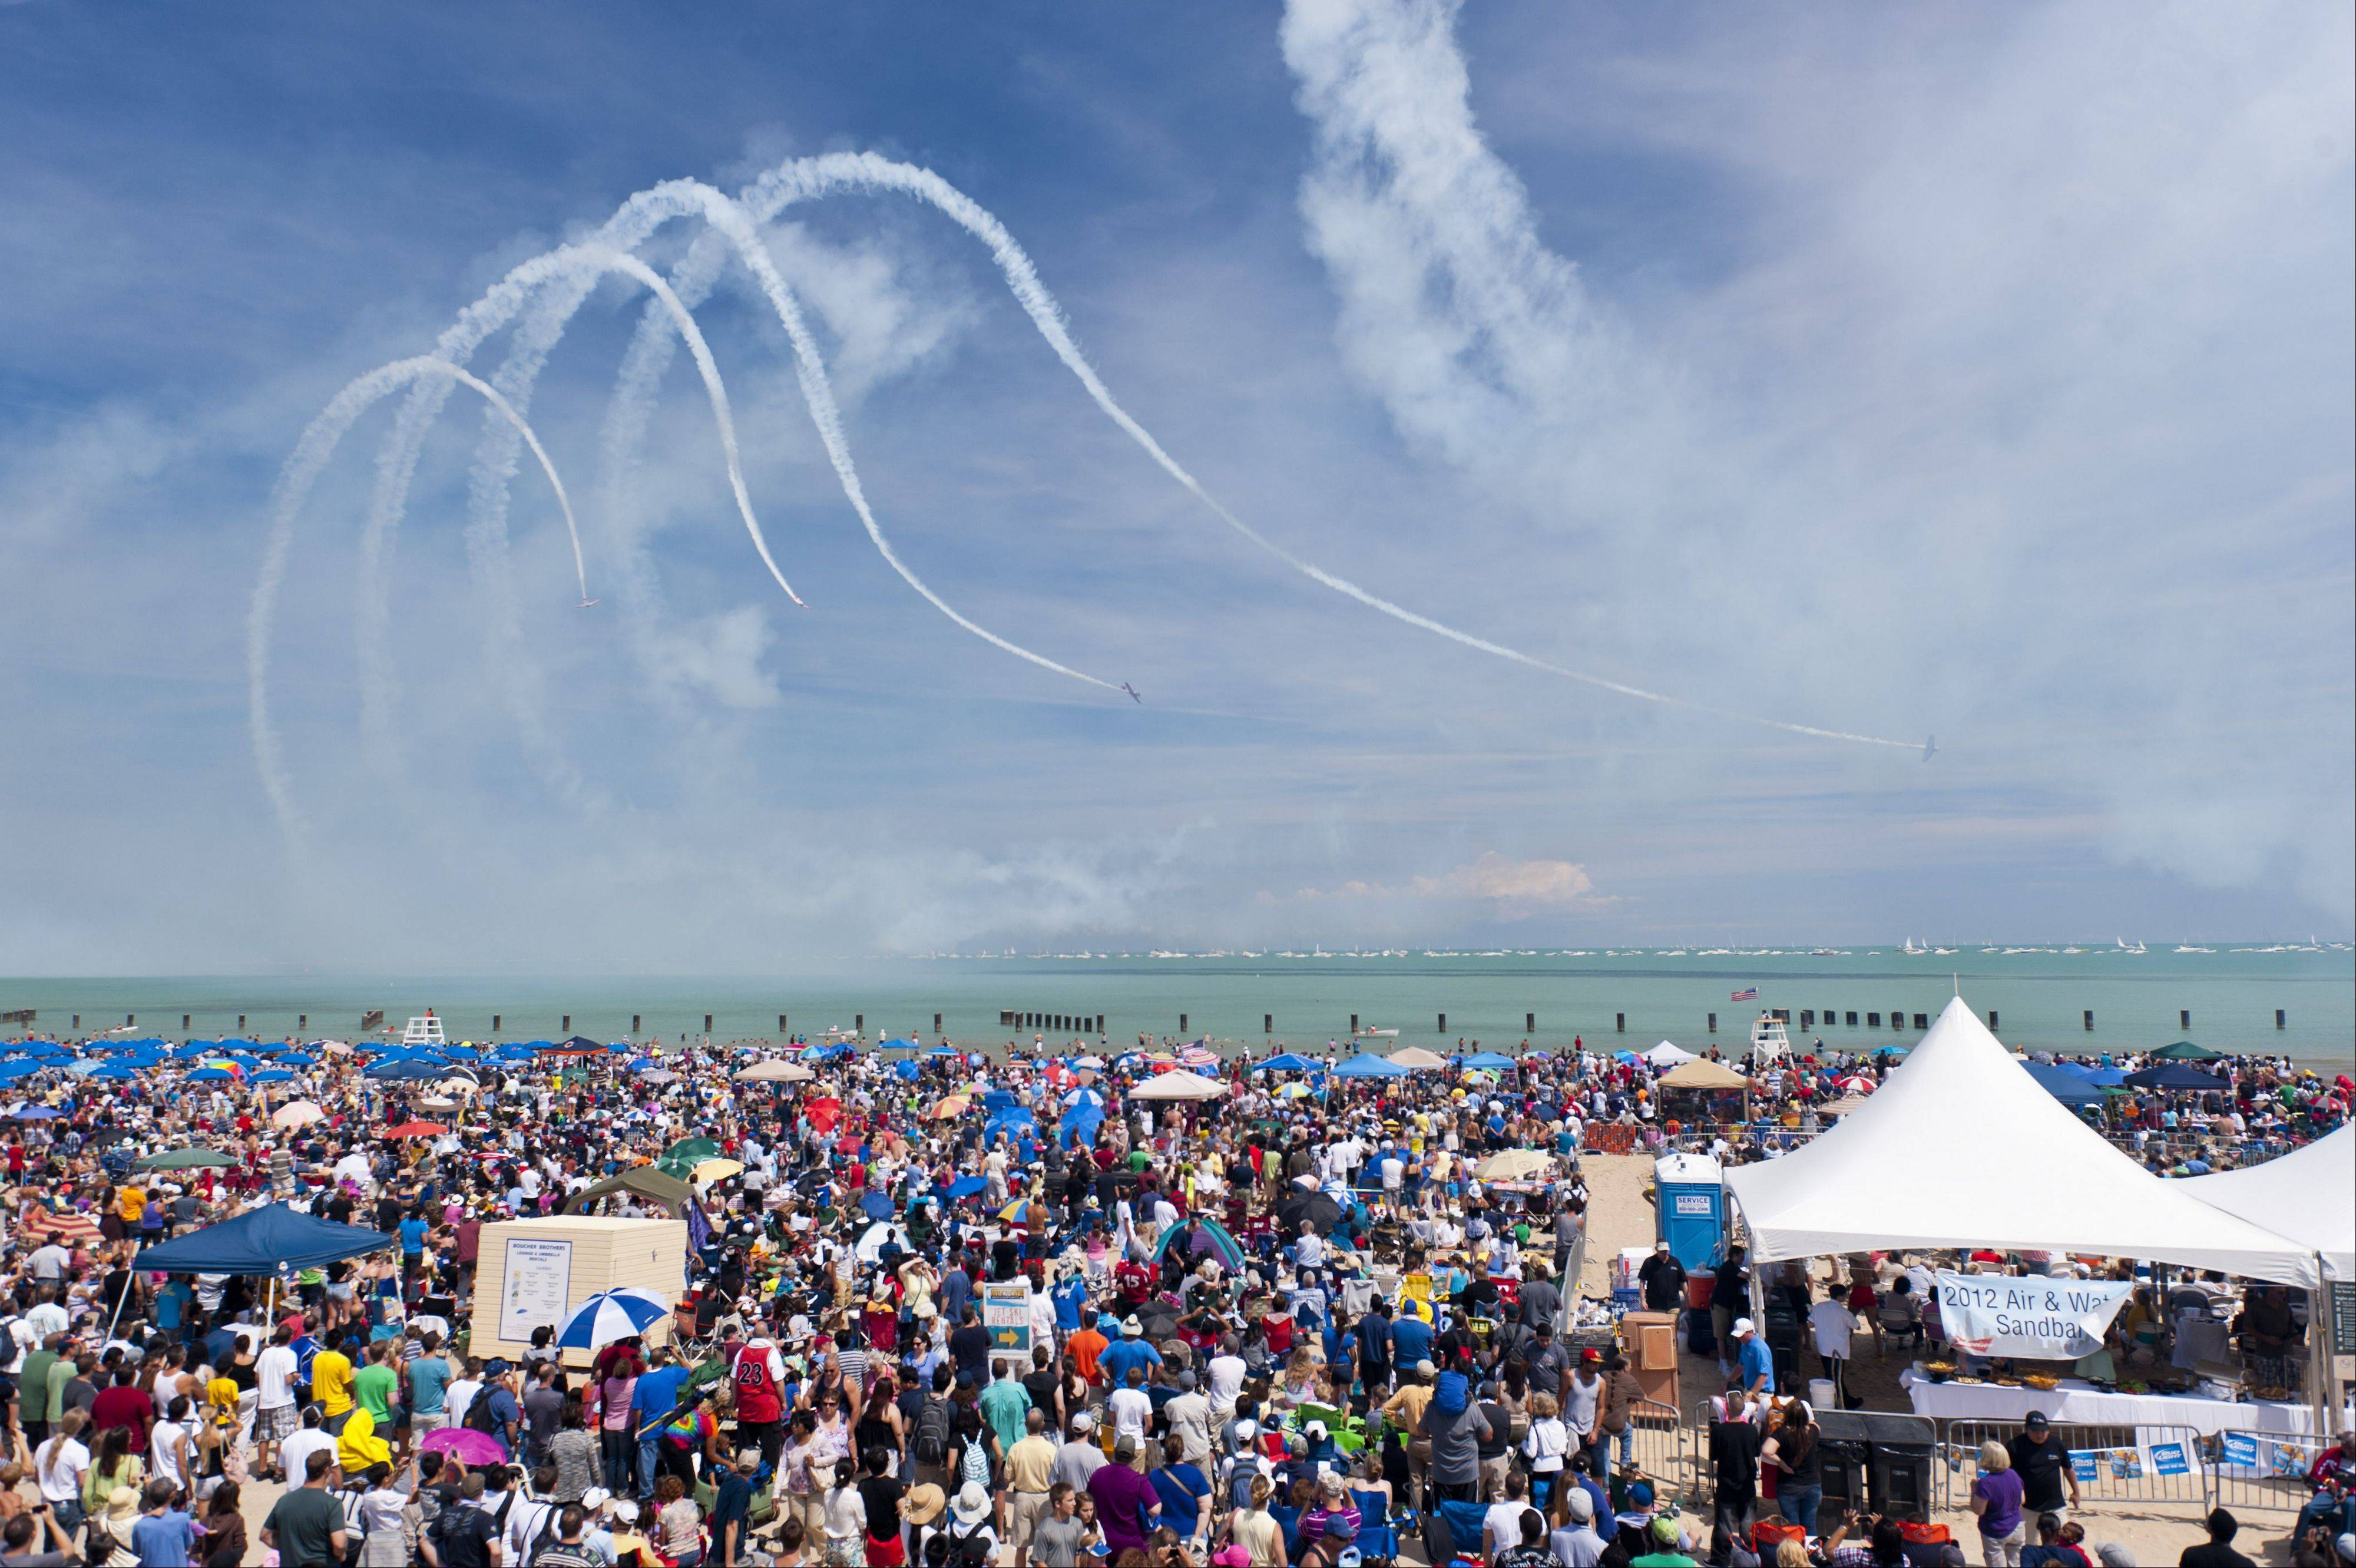 Eye some highflying at the Chicago Air & Water Show, Aug. 17-18.